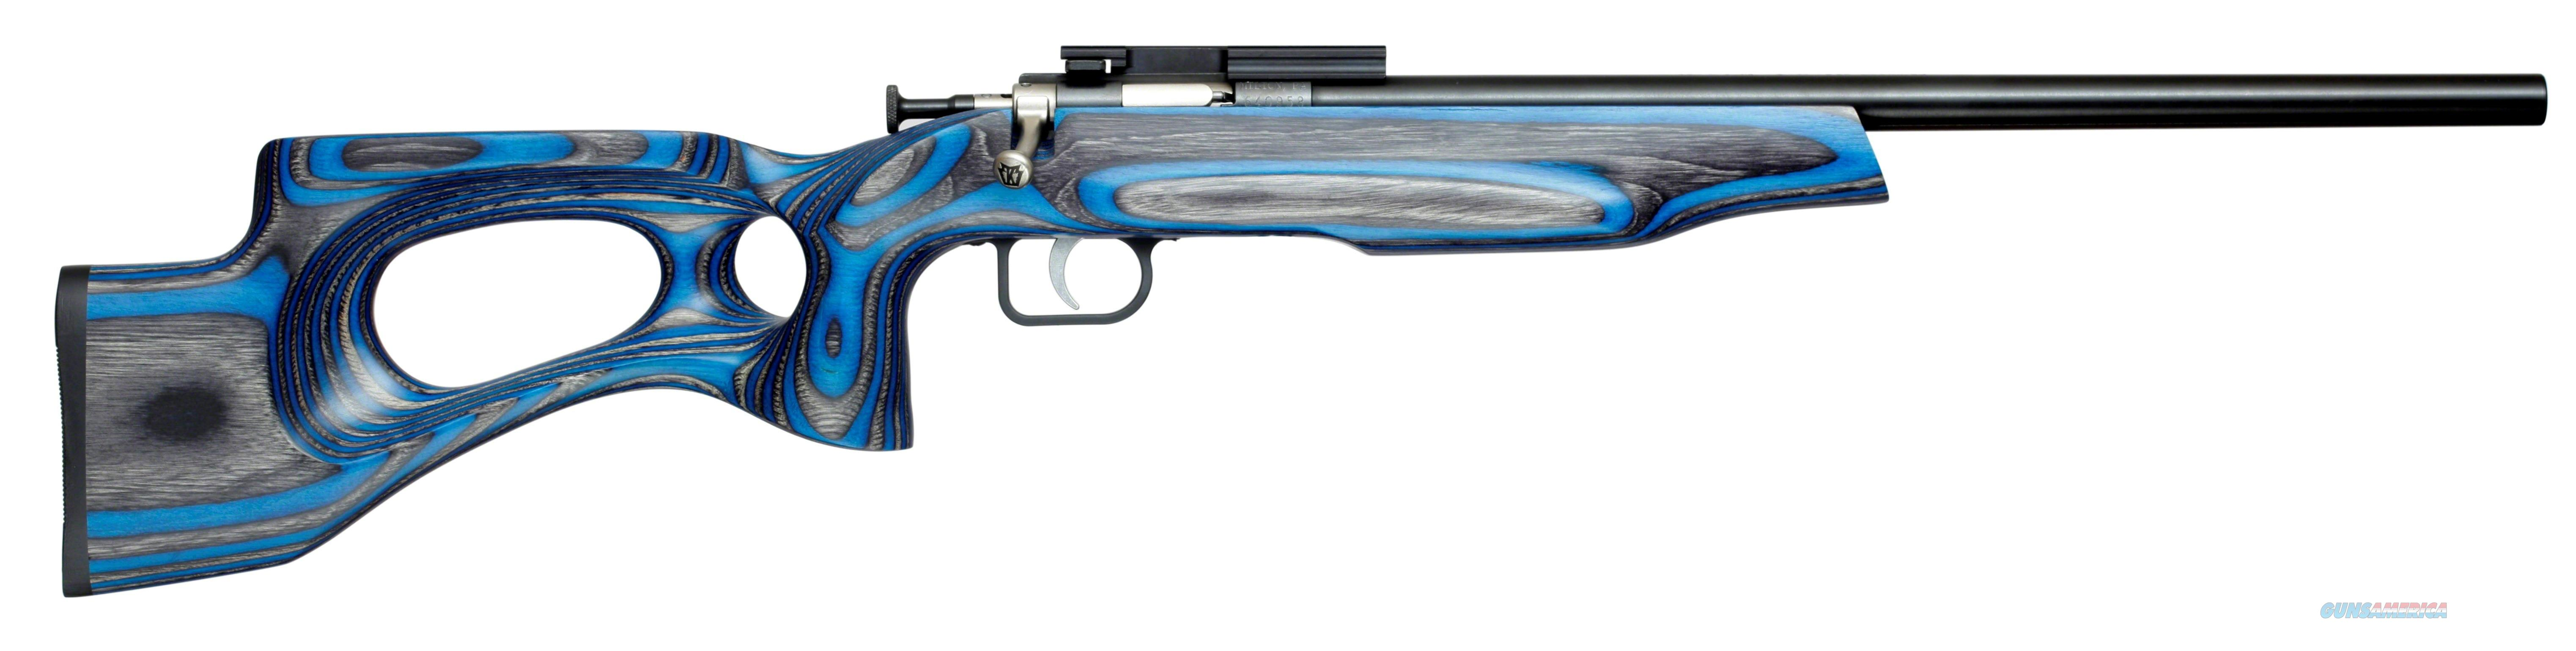 "CRICKETT, KEYSTONE YOUTH RIFLE, 22 LR, SINGLE SHOT, EZ LOADER, SCOPE MOUNT, TARGET MODEL, 16.125"" SS BBL, BLUE LAM KSA2649  Guns > Rifles > C Misc Rifles"